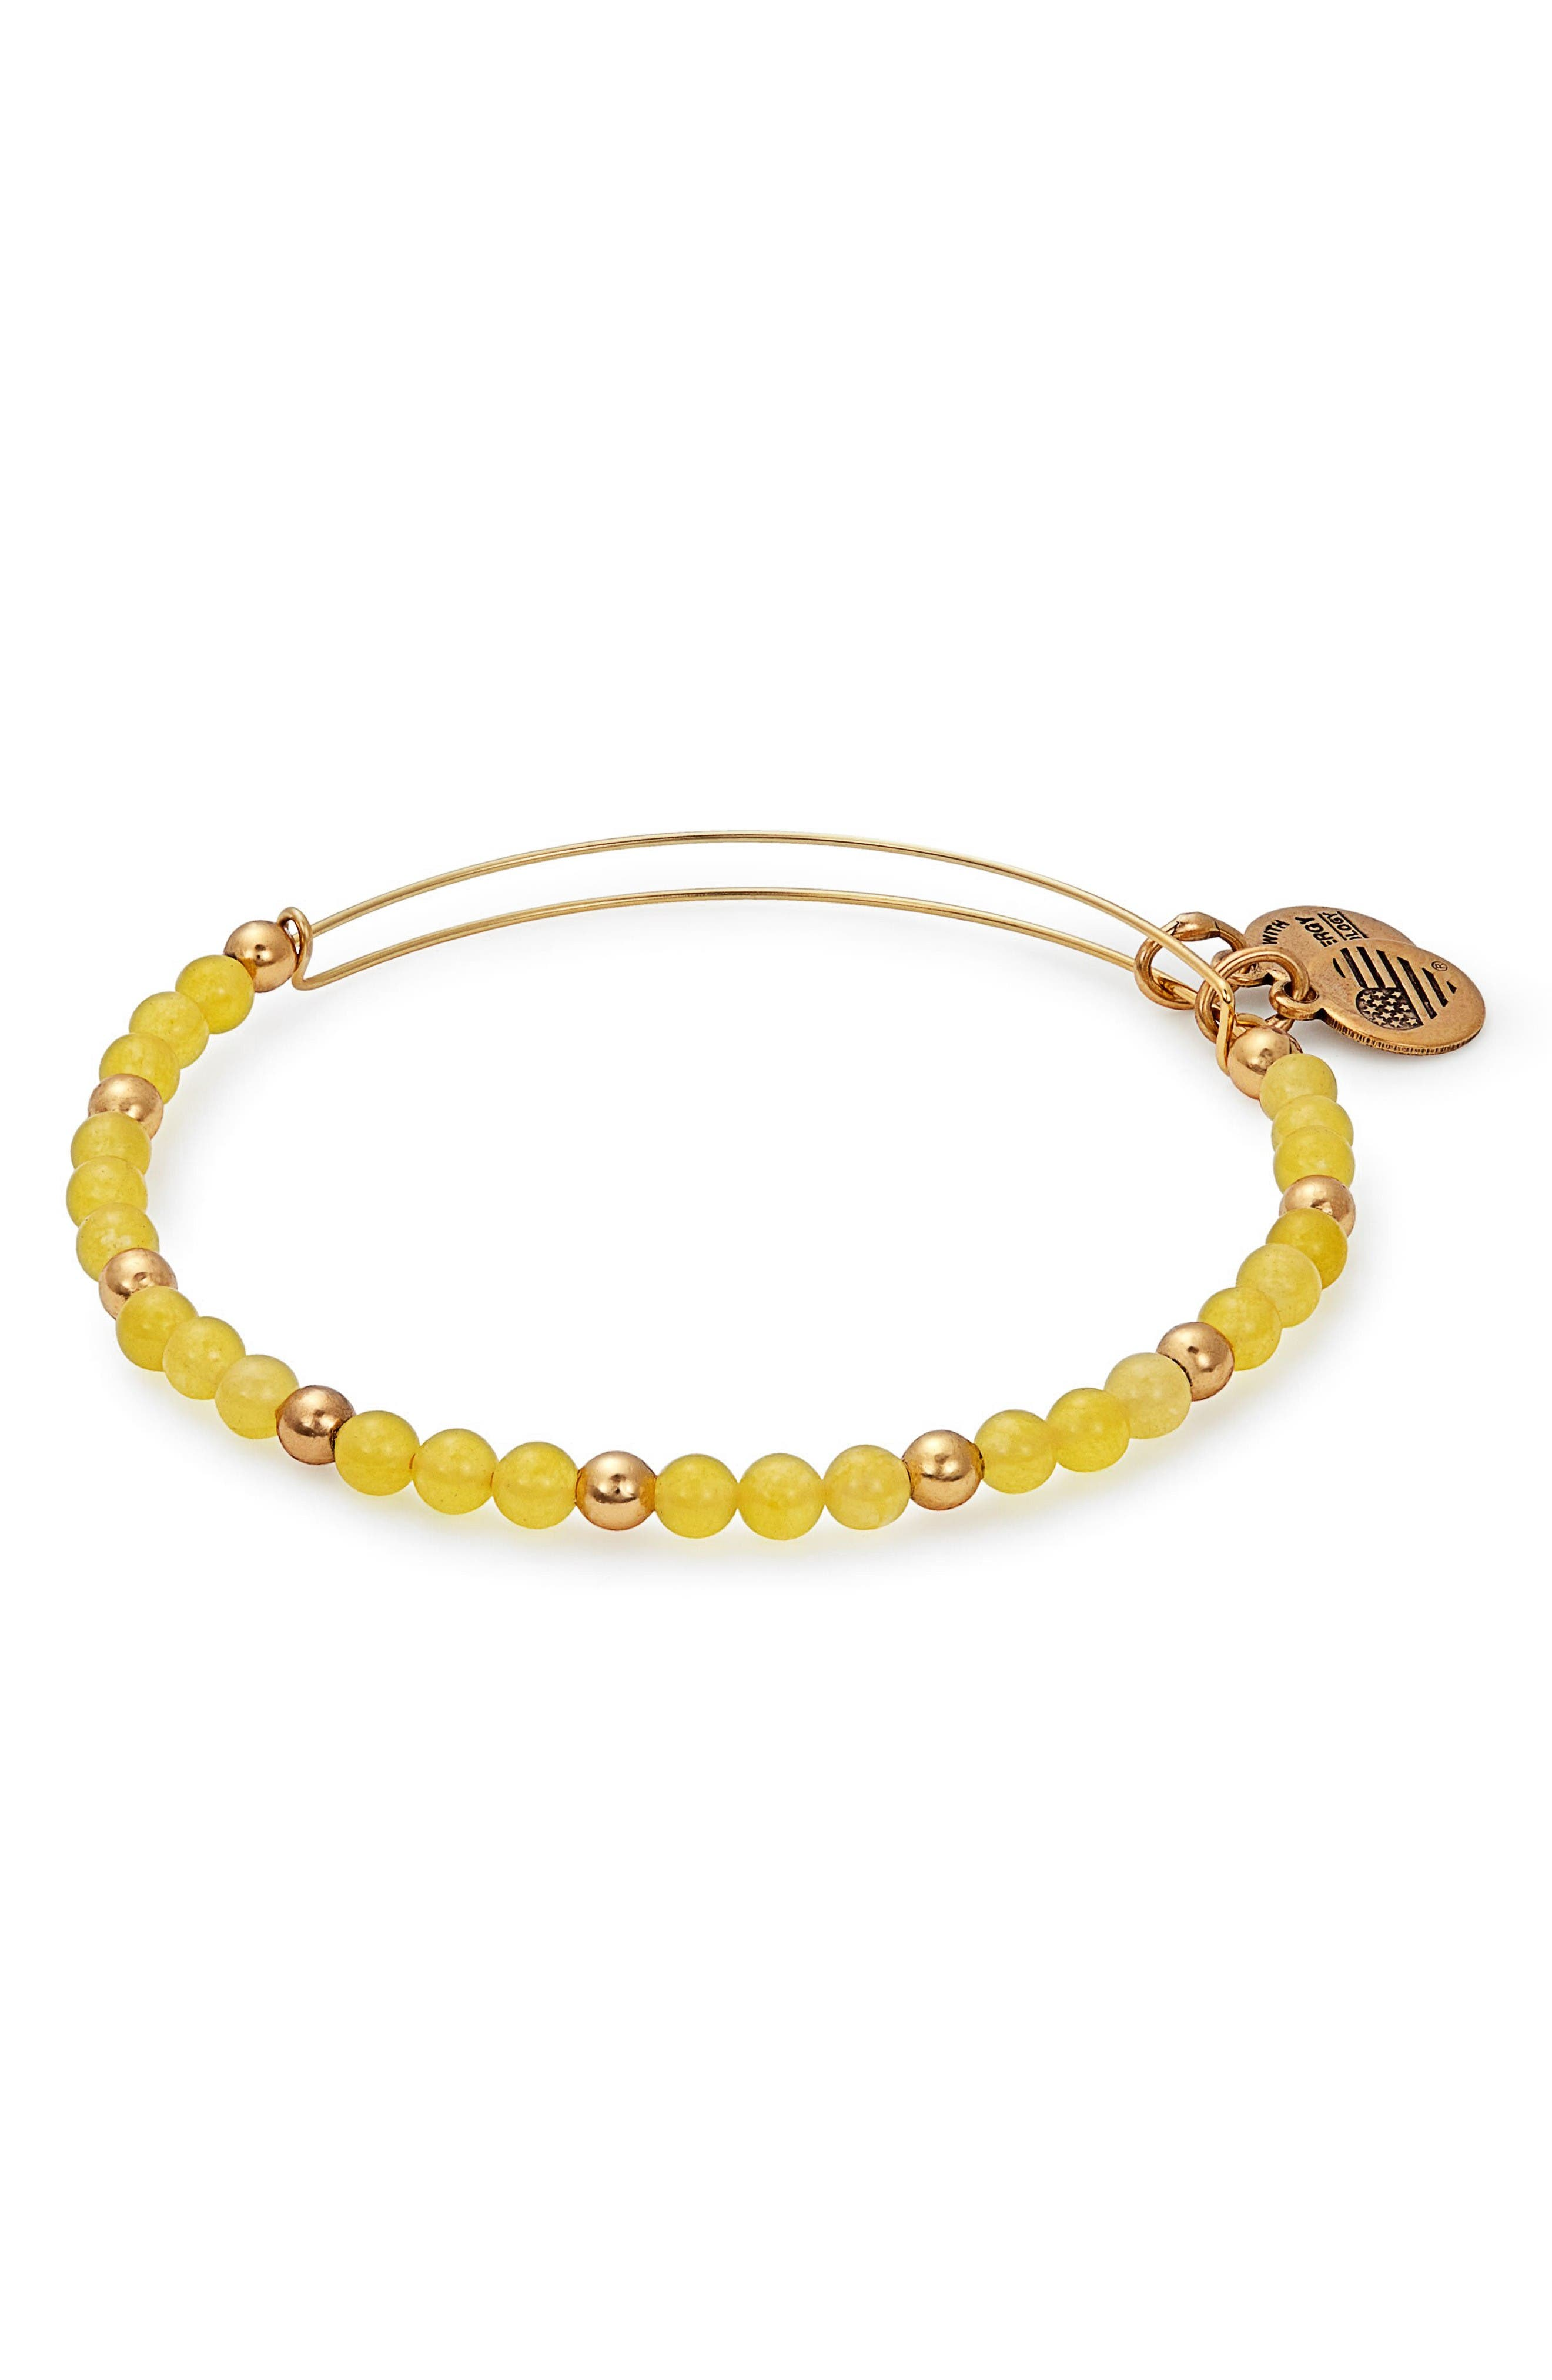 Main Image - Alex and Ani Color Classics Adjustable Beaded Bangle